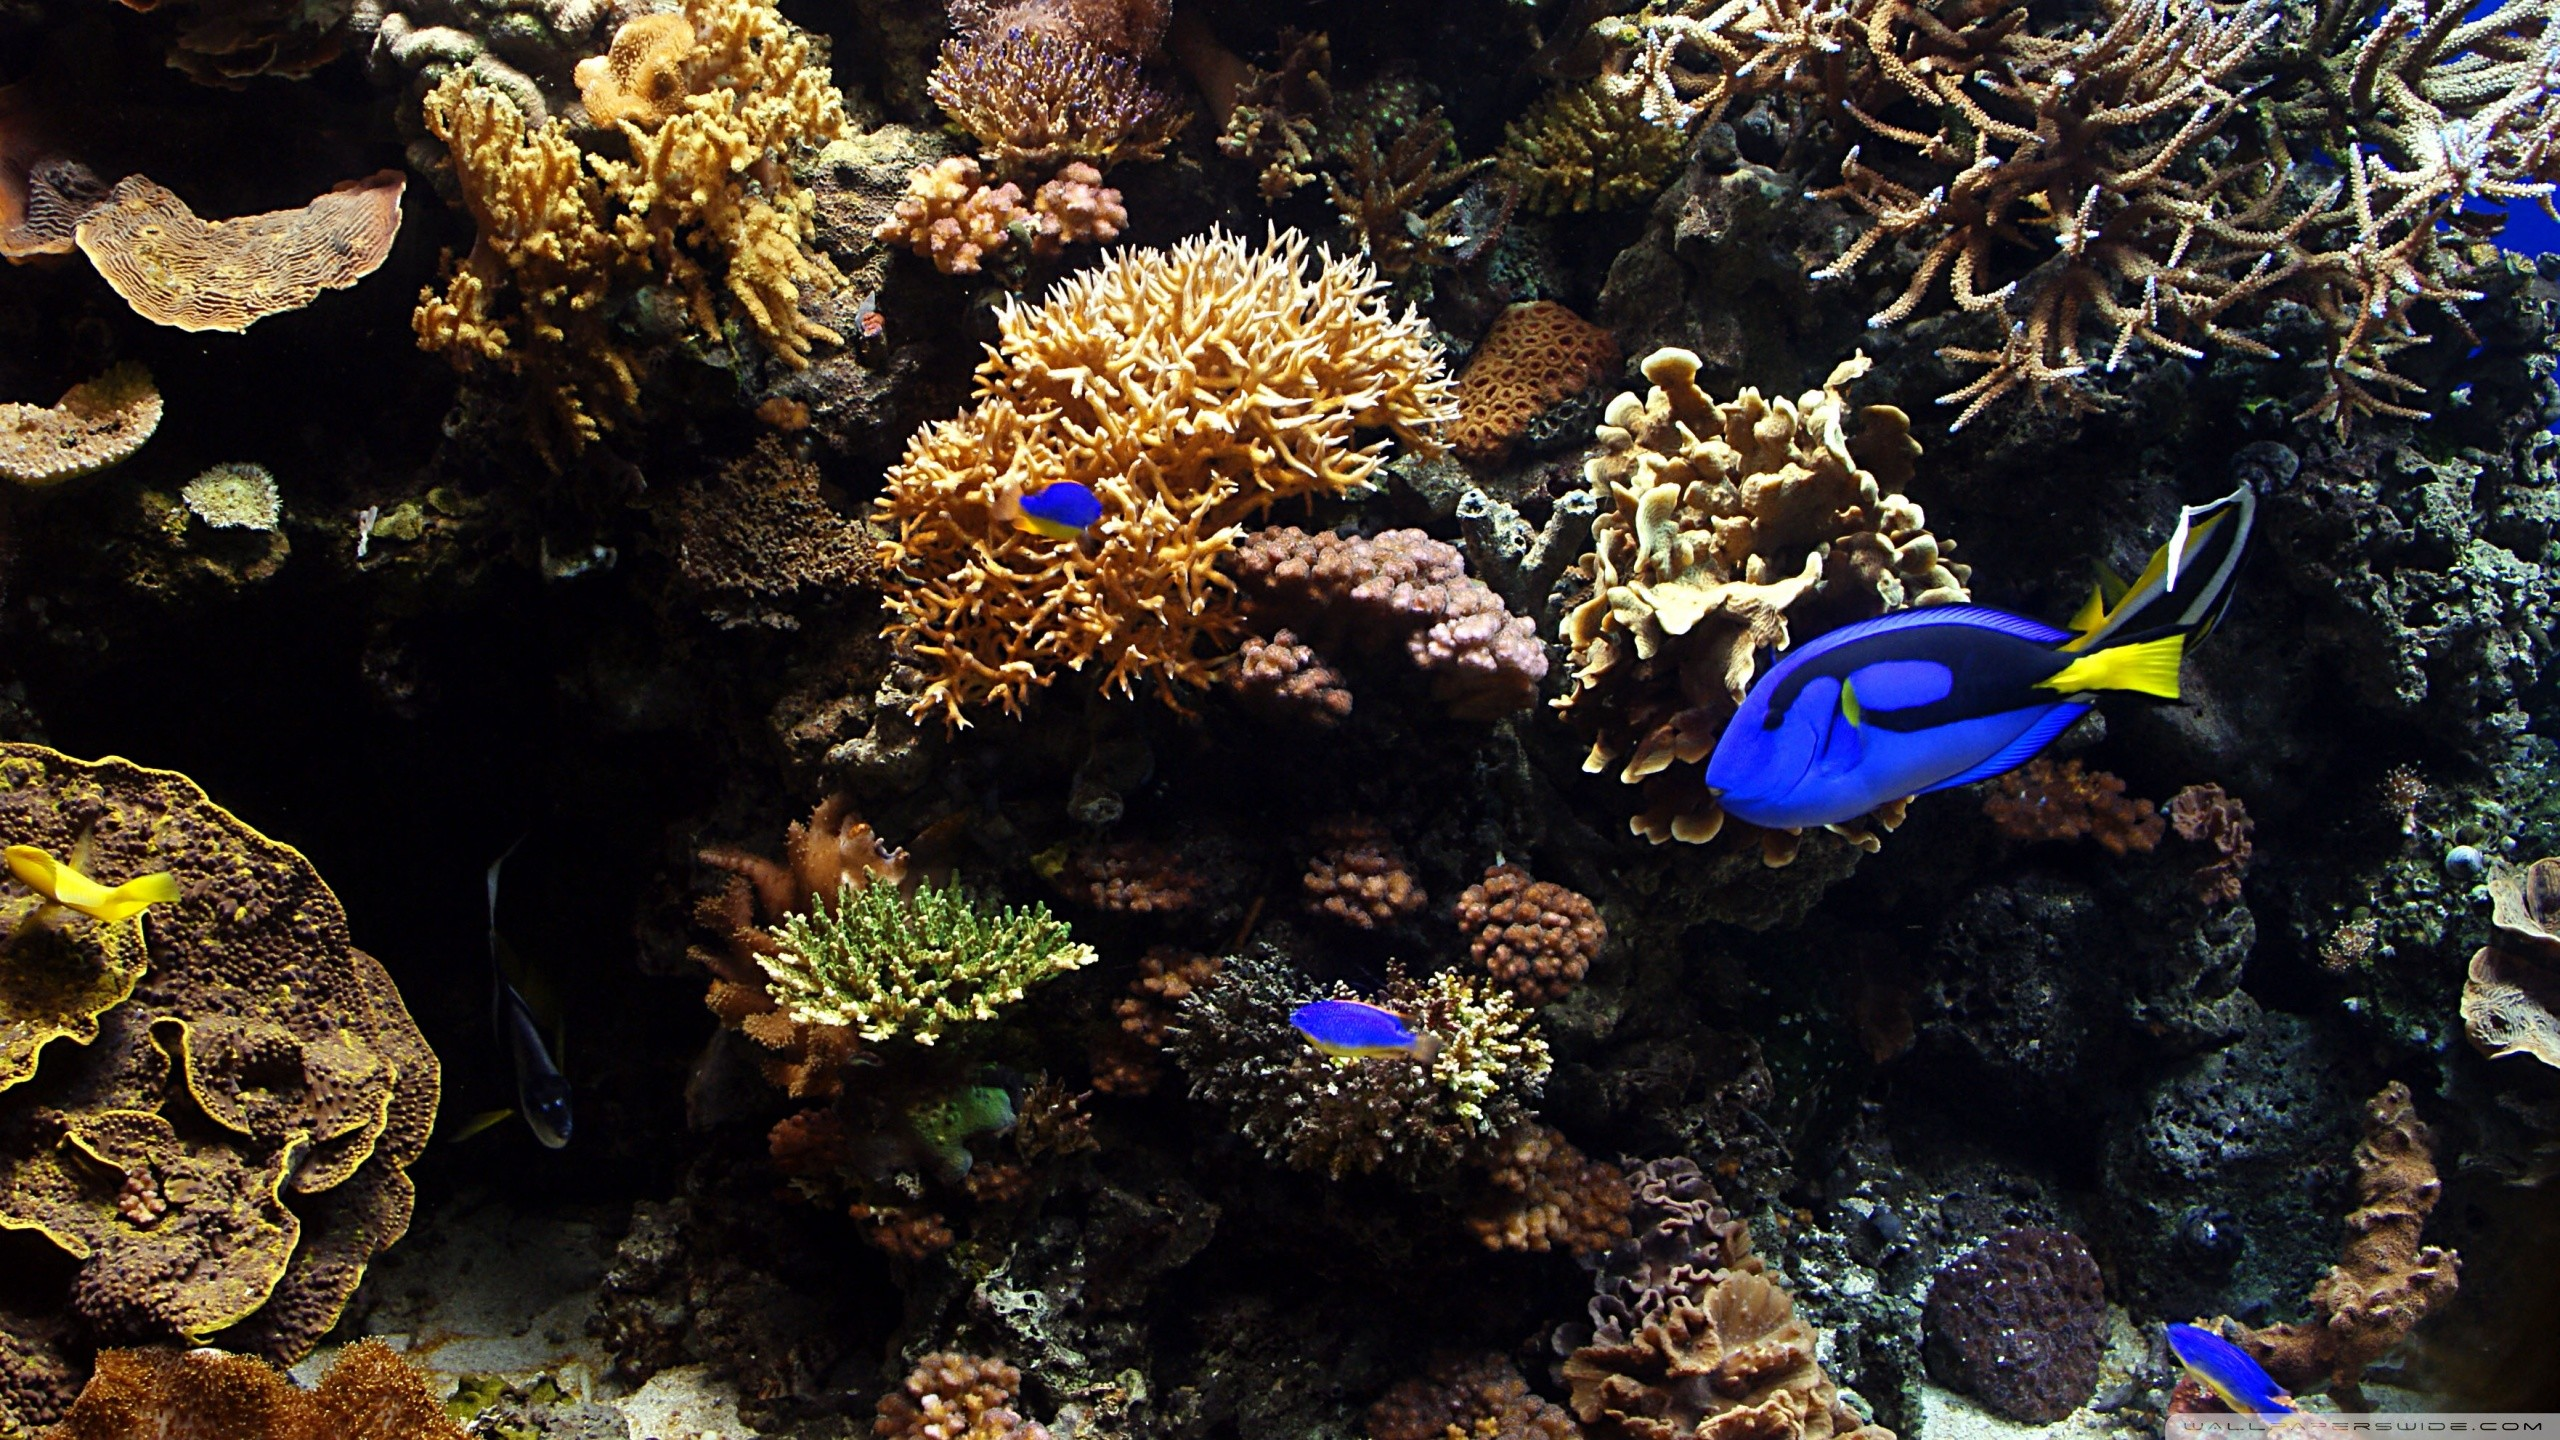 Aquarium live wallpaper for pc 55 images for Desktop fish tank